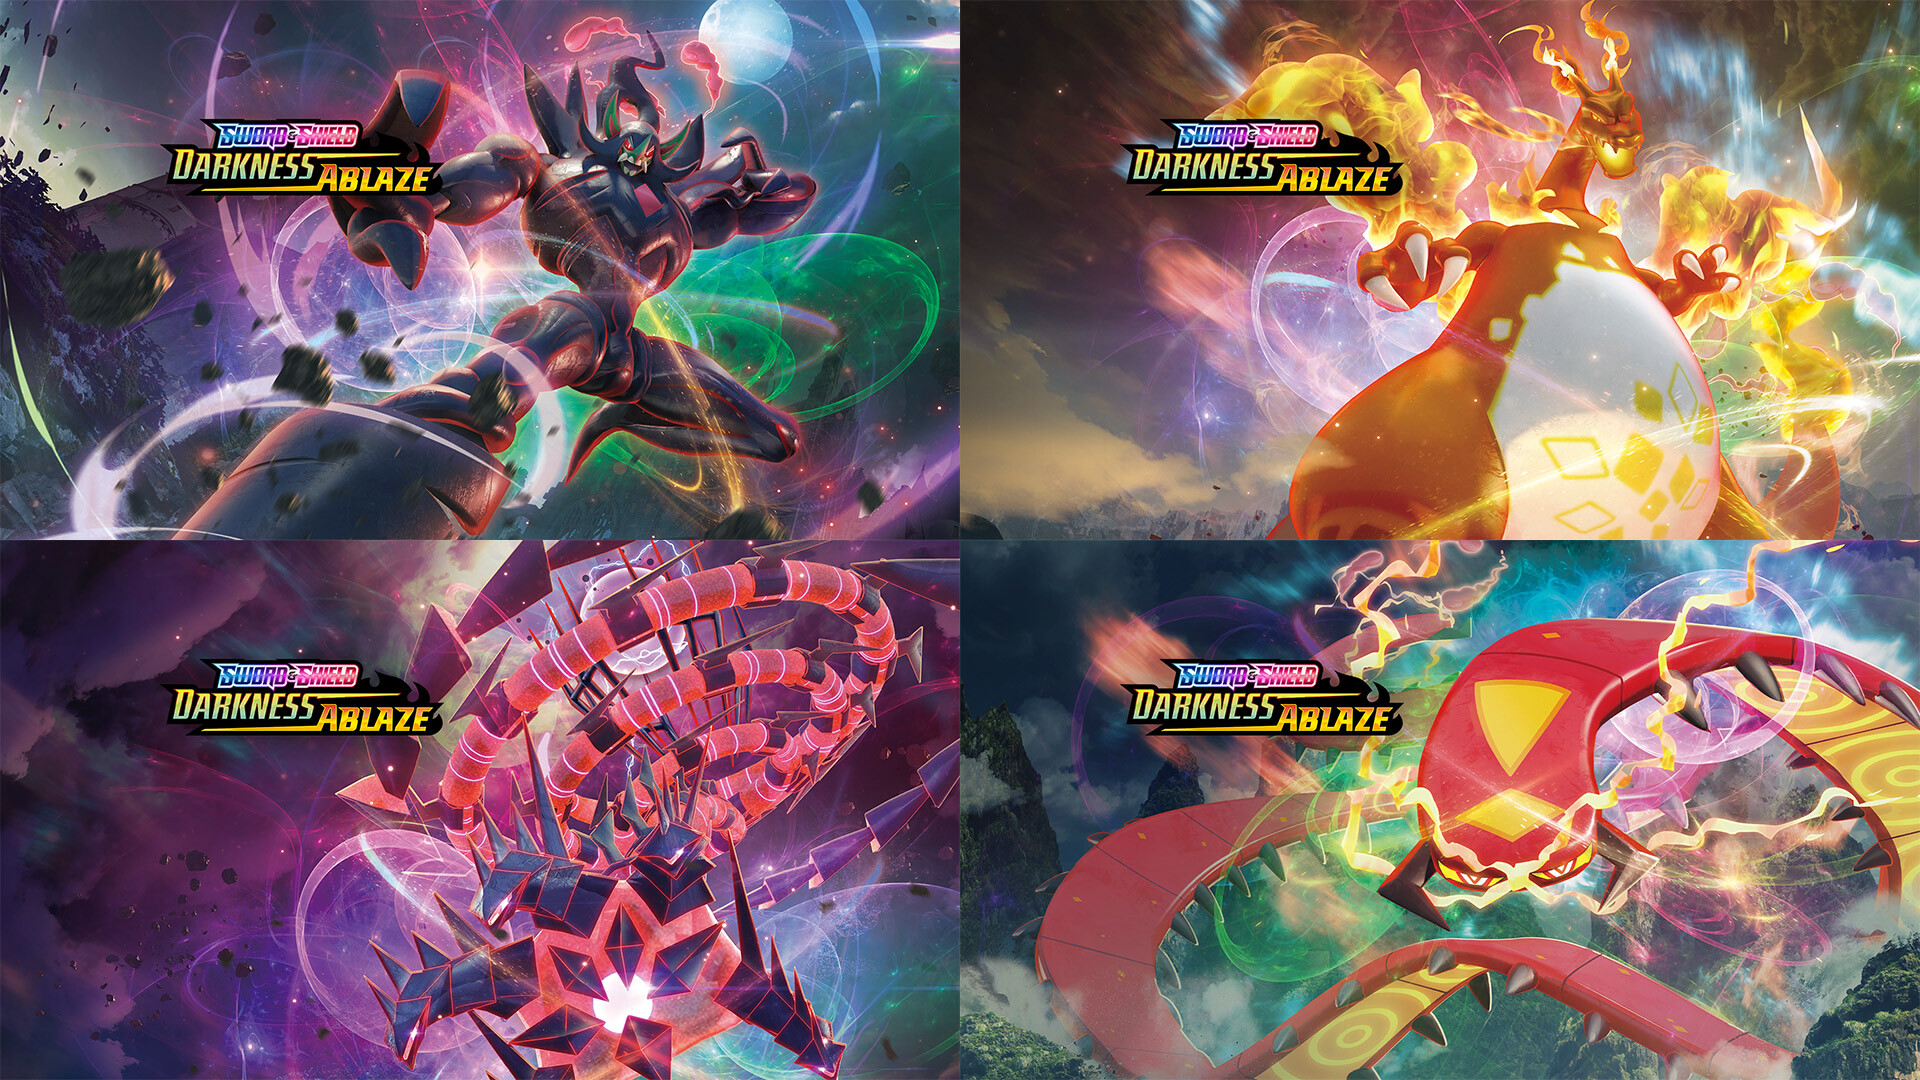 Download Darkness Ablaze Wallpapers Pokeguardian We Bring You The Latest Pokemon Tcg News Every Day